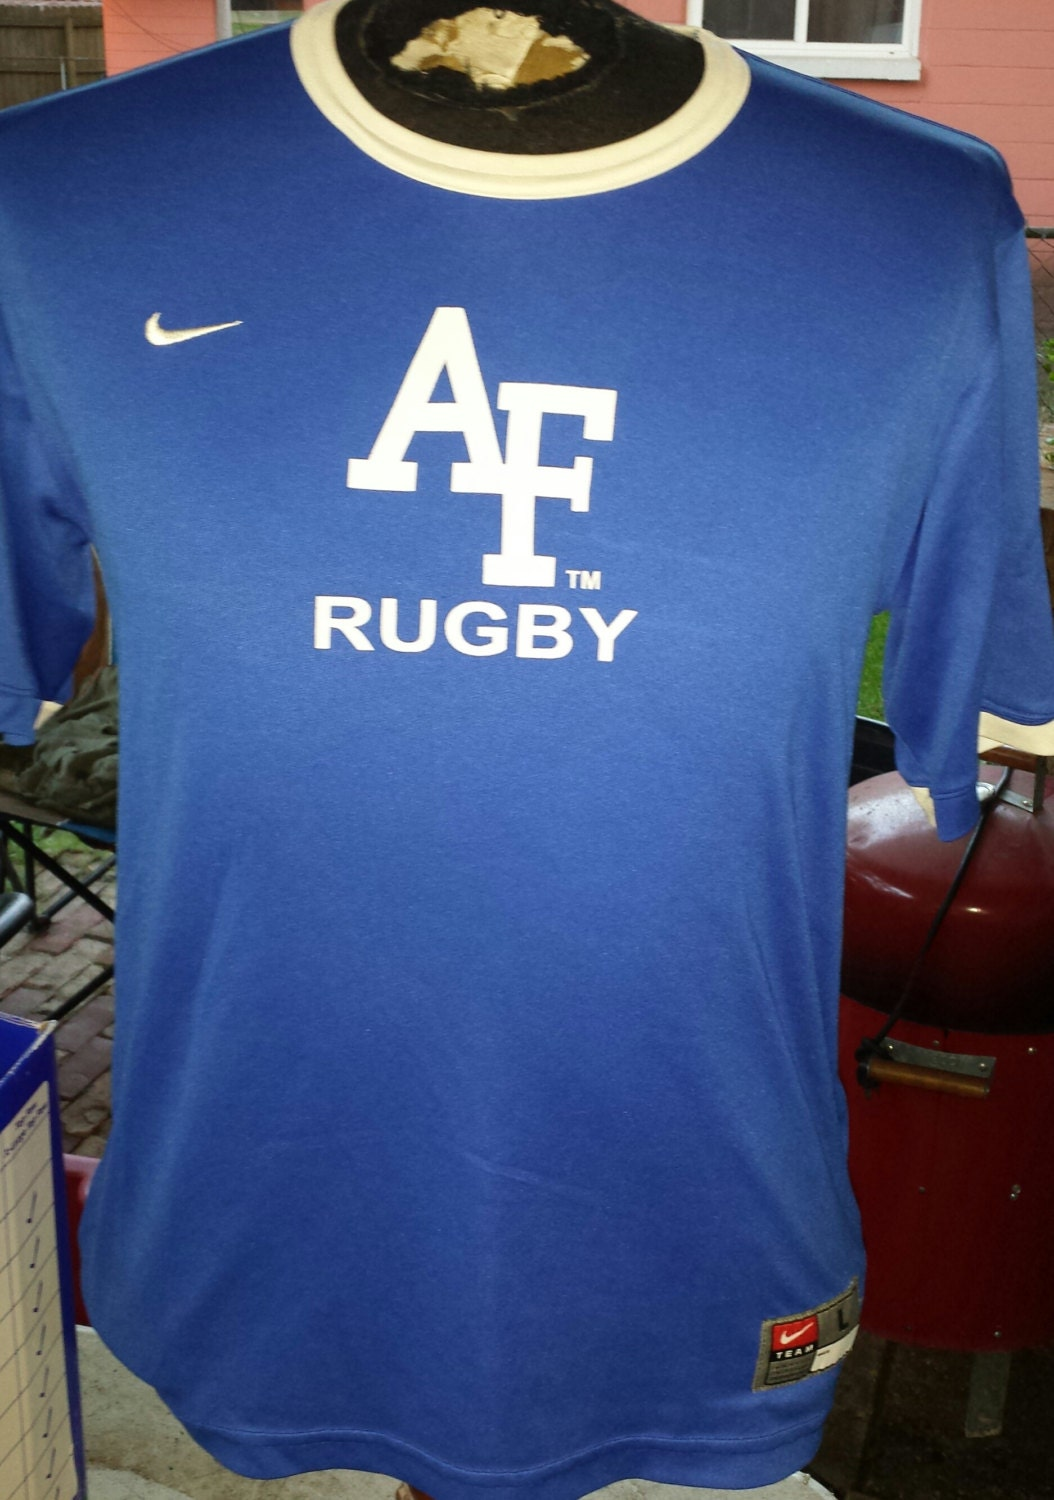 us air force academy rugby jersey by nike size large usafa